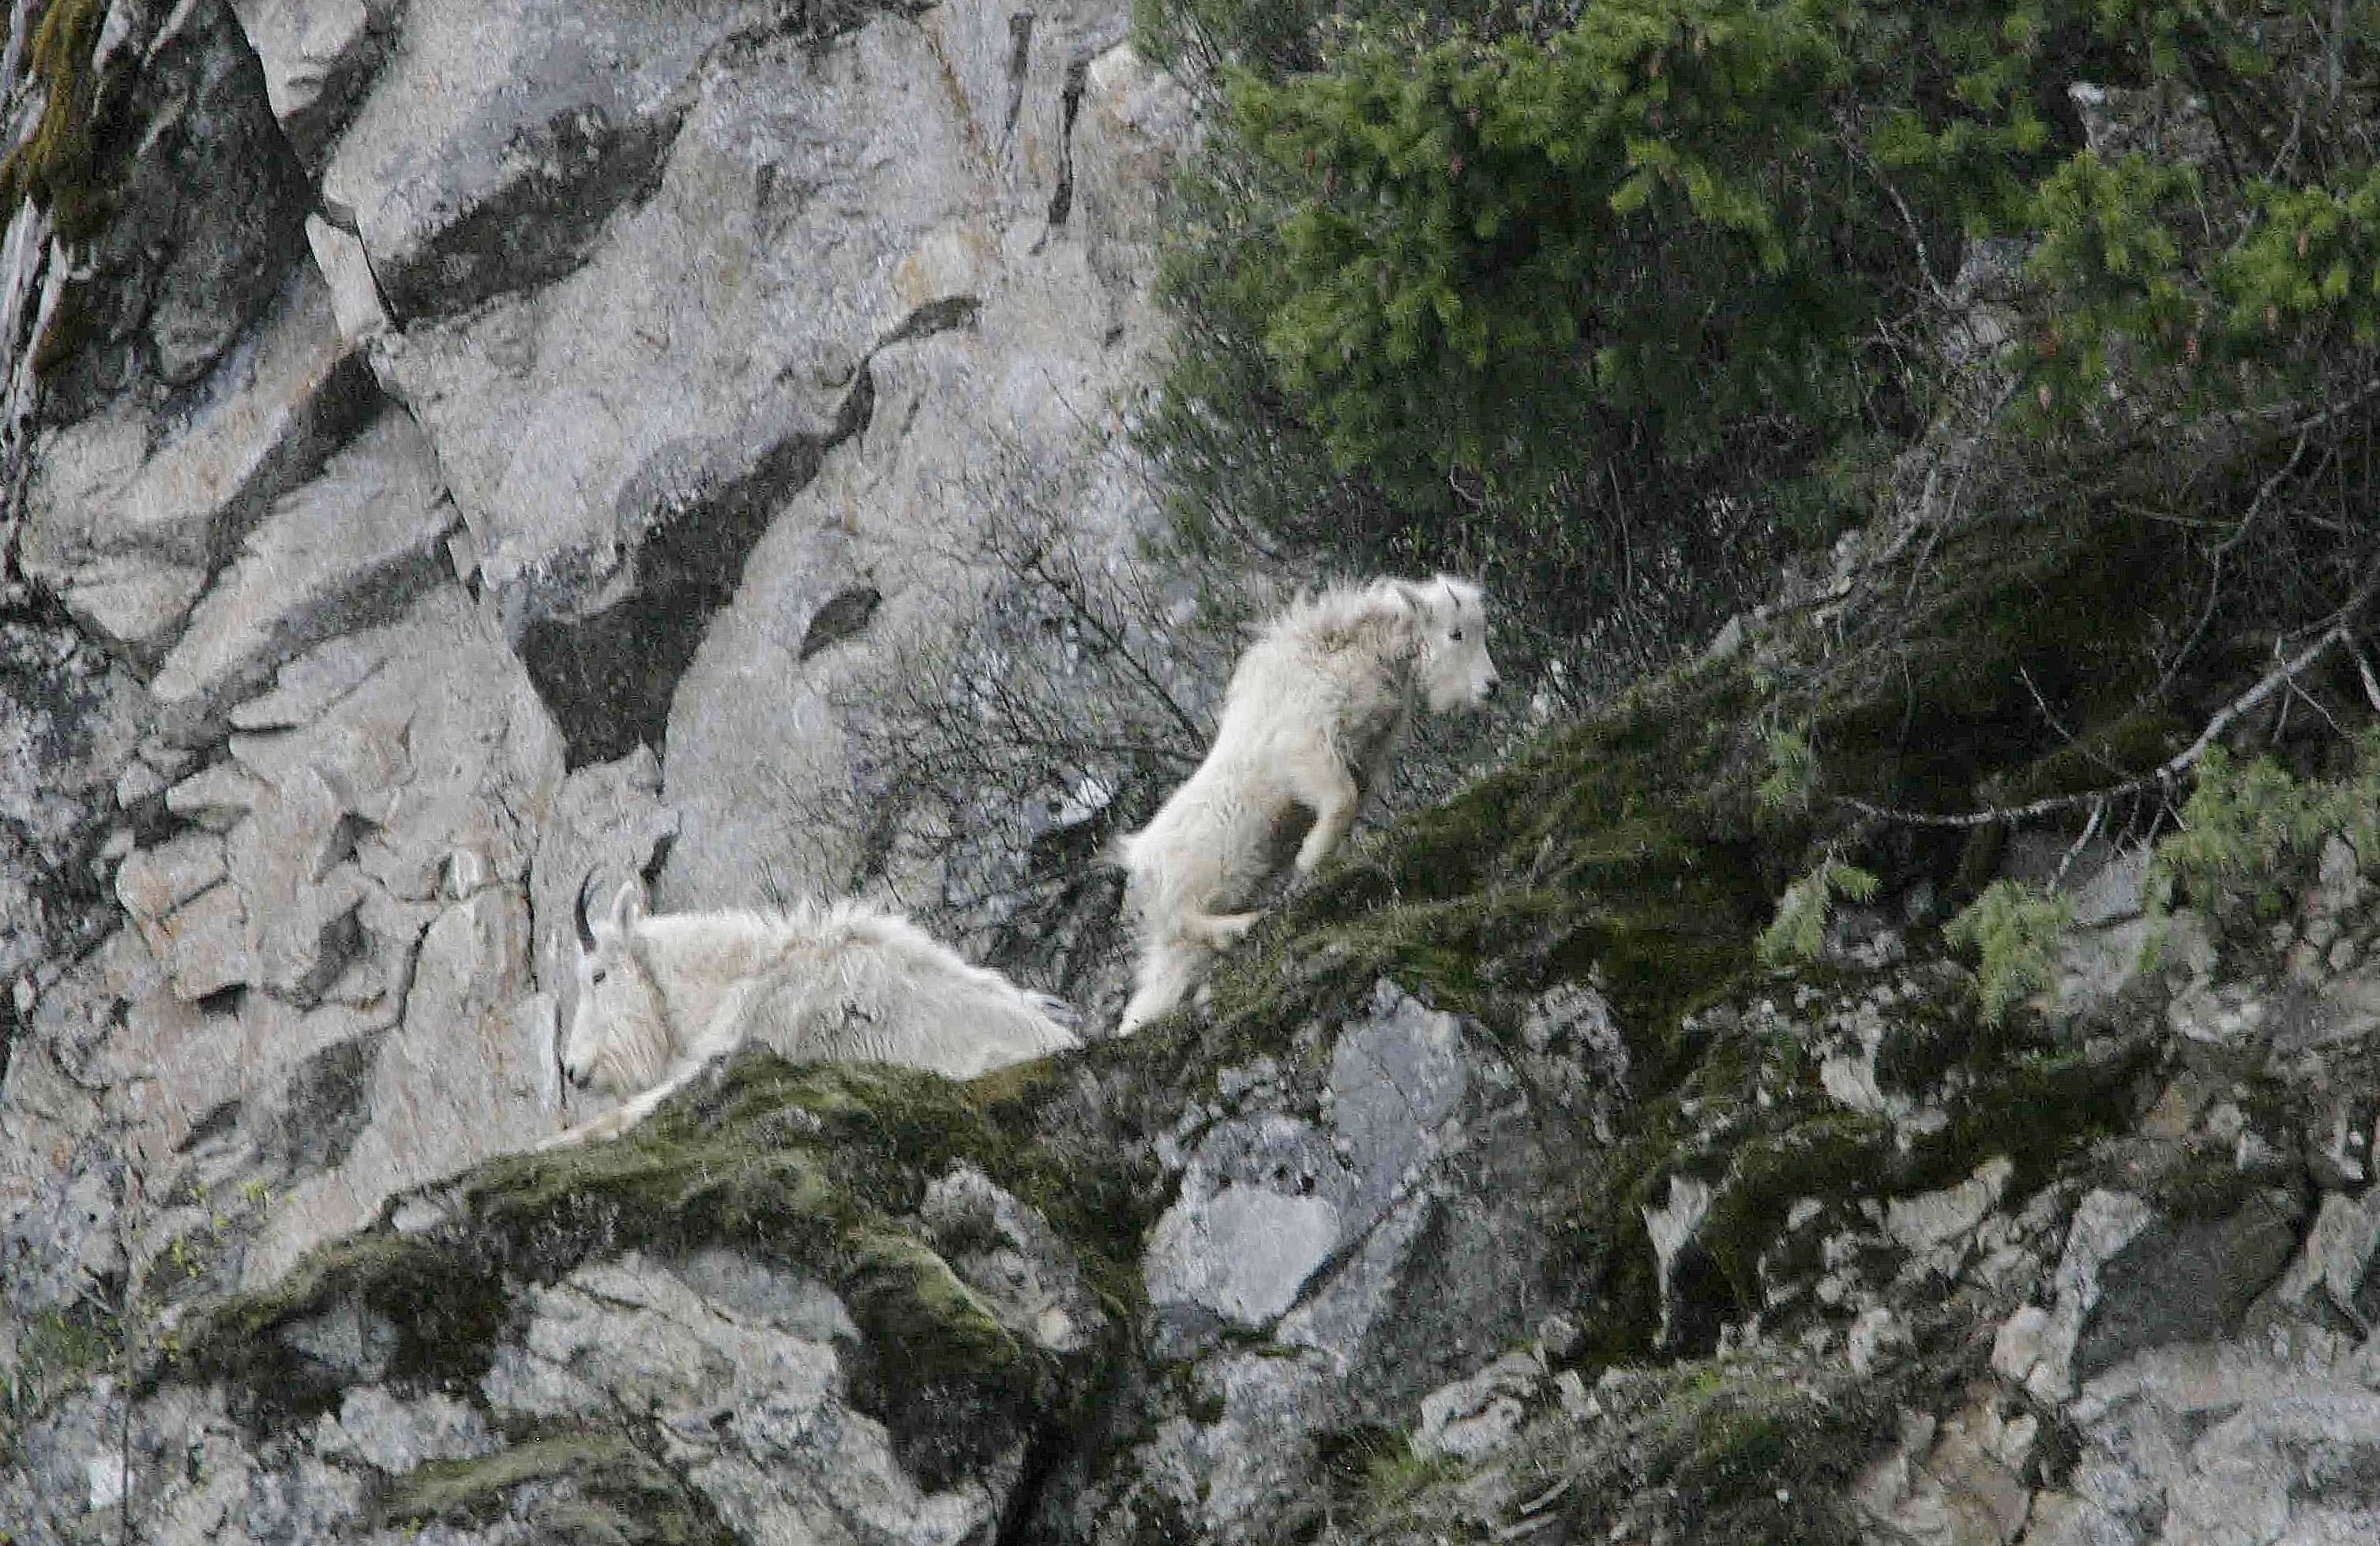 mountain goats on rocky cliffs April 2007